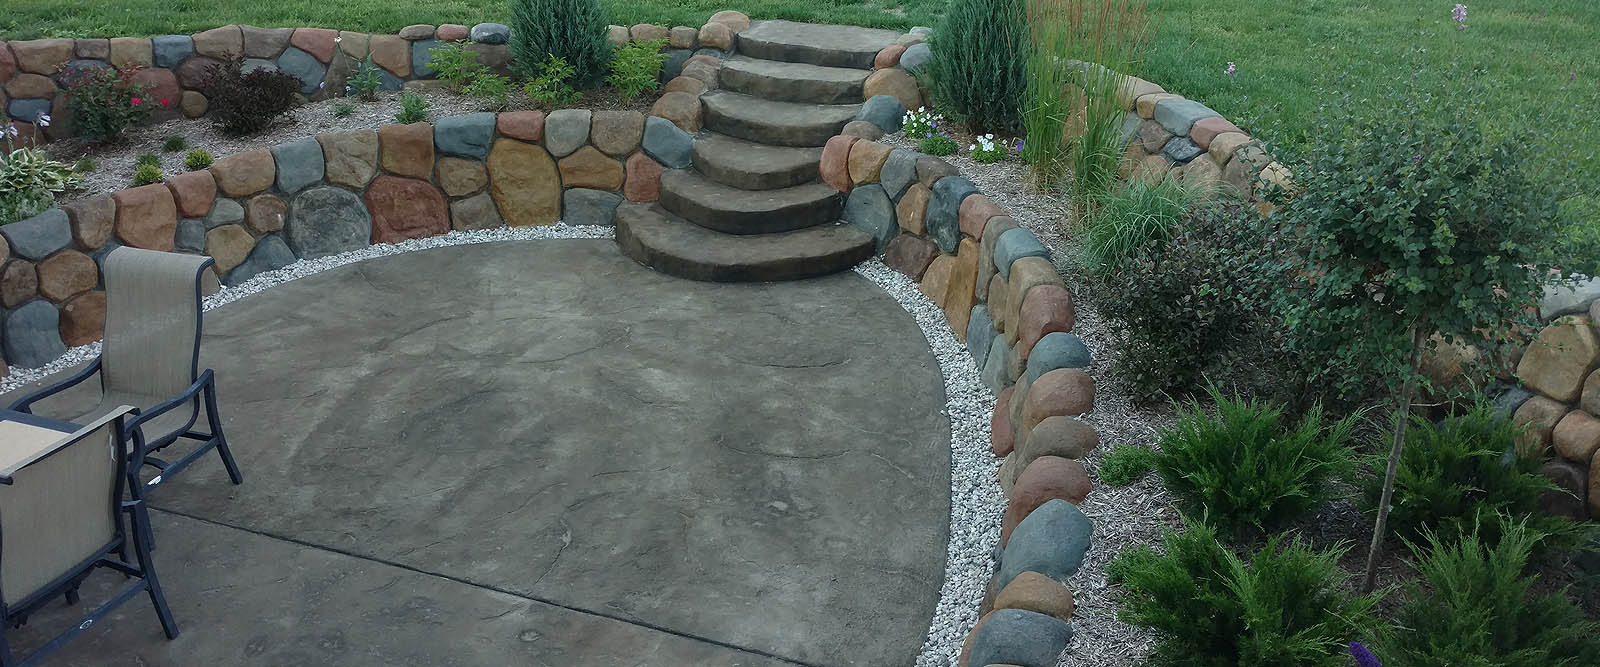 Cupps Masonry Patio Stone Michigan